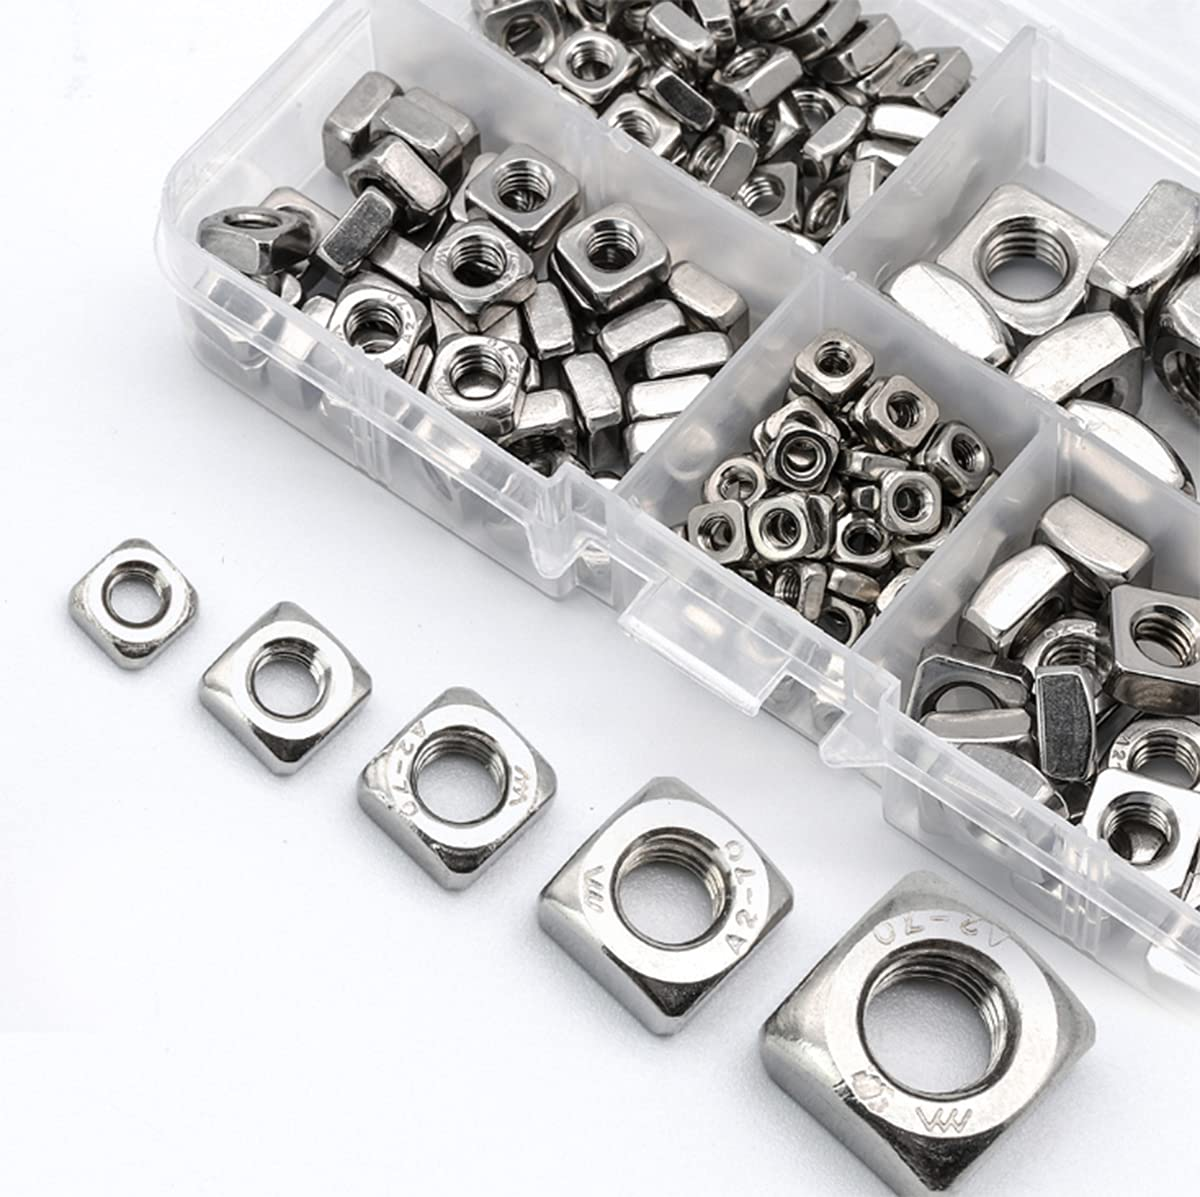 Square Nuts Lock Metric Kansas City Mall Coarse Steel 304 Stainless Fixed price for sale M Thread